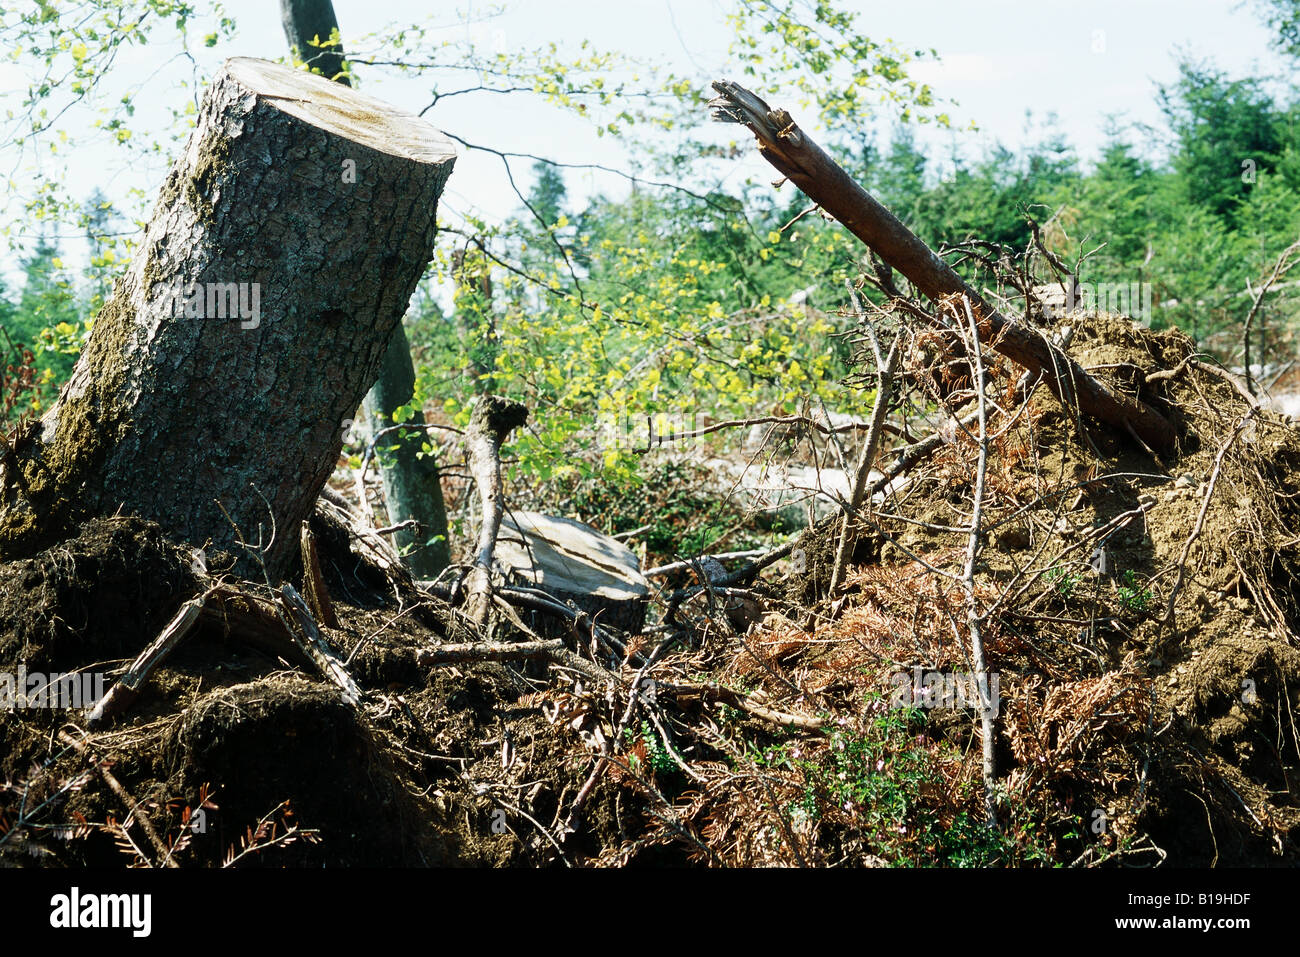 Uprooted tree trunks and roots - Stock Image